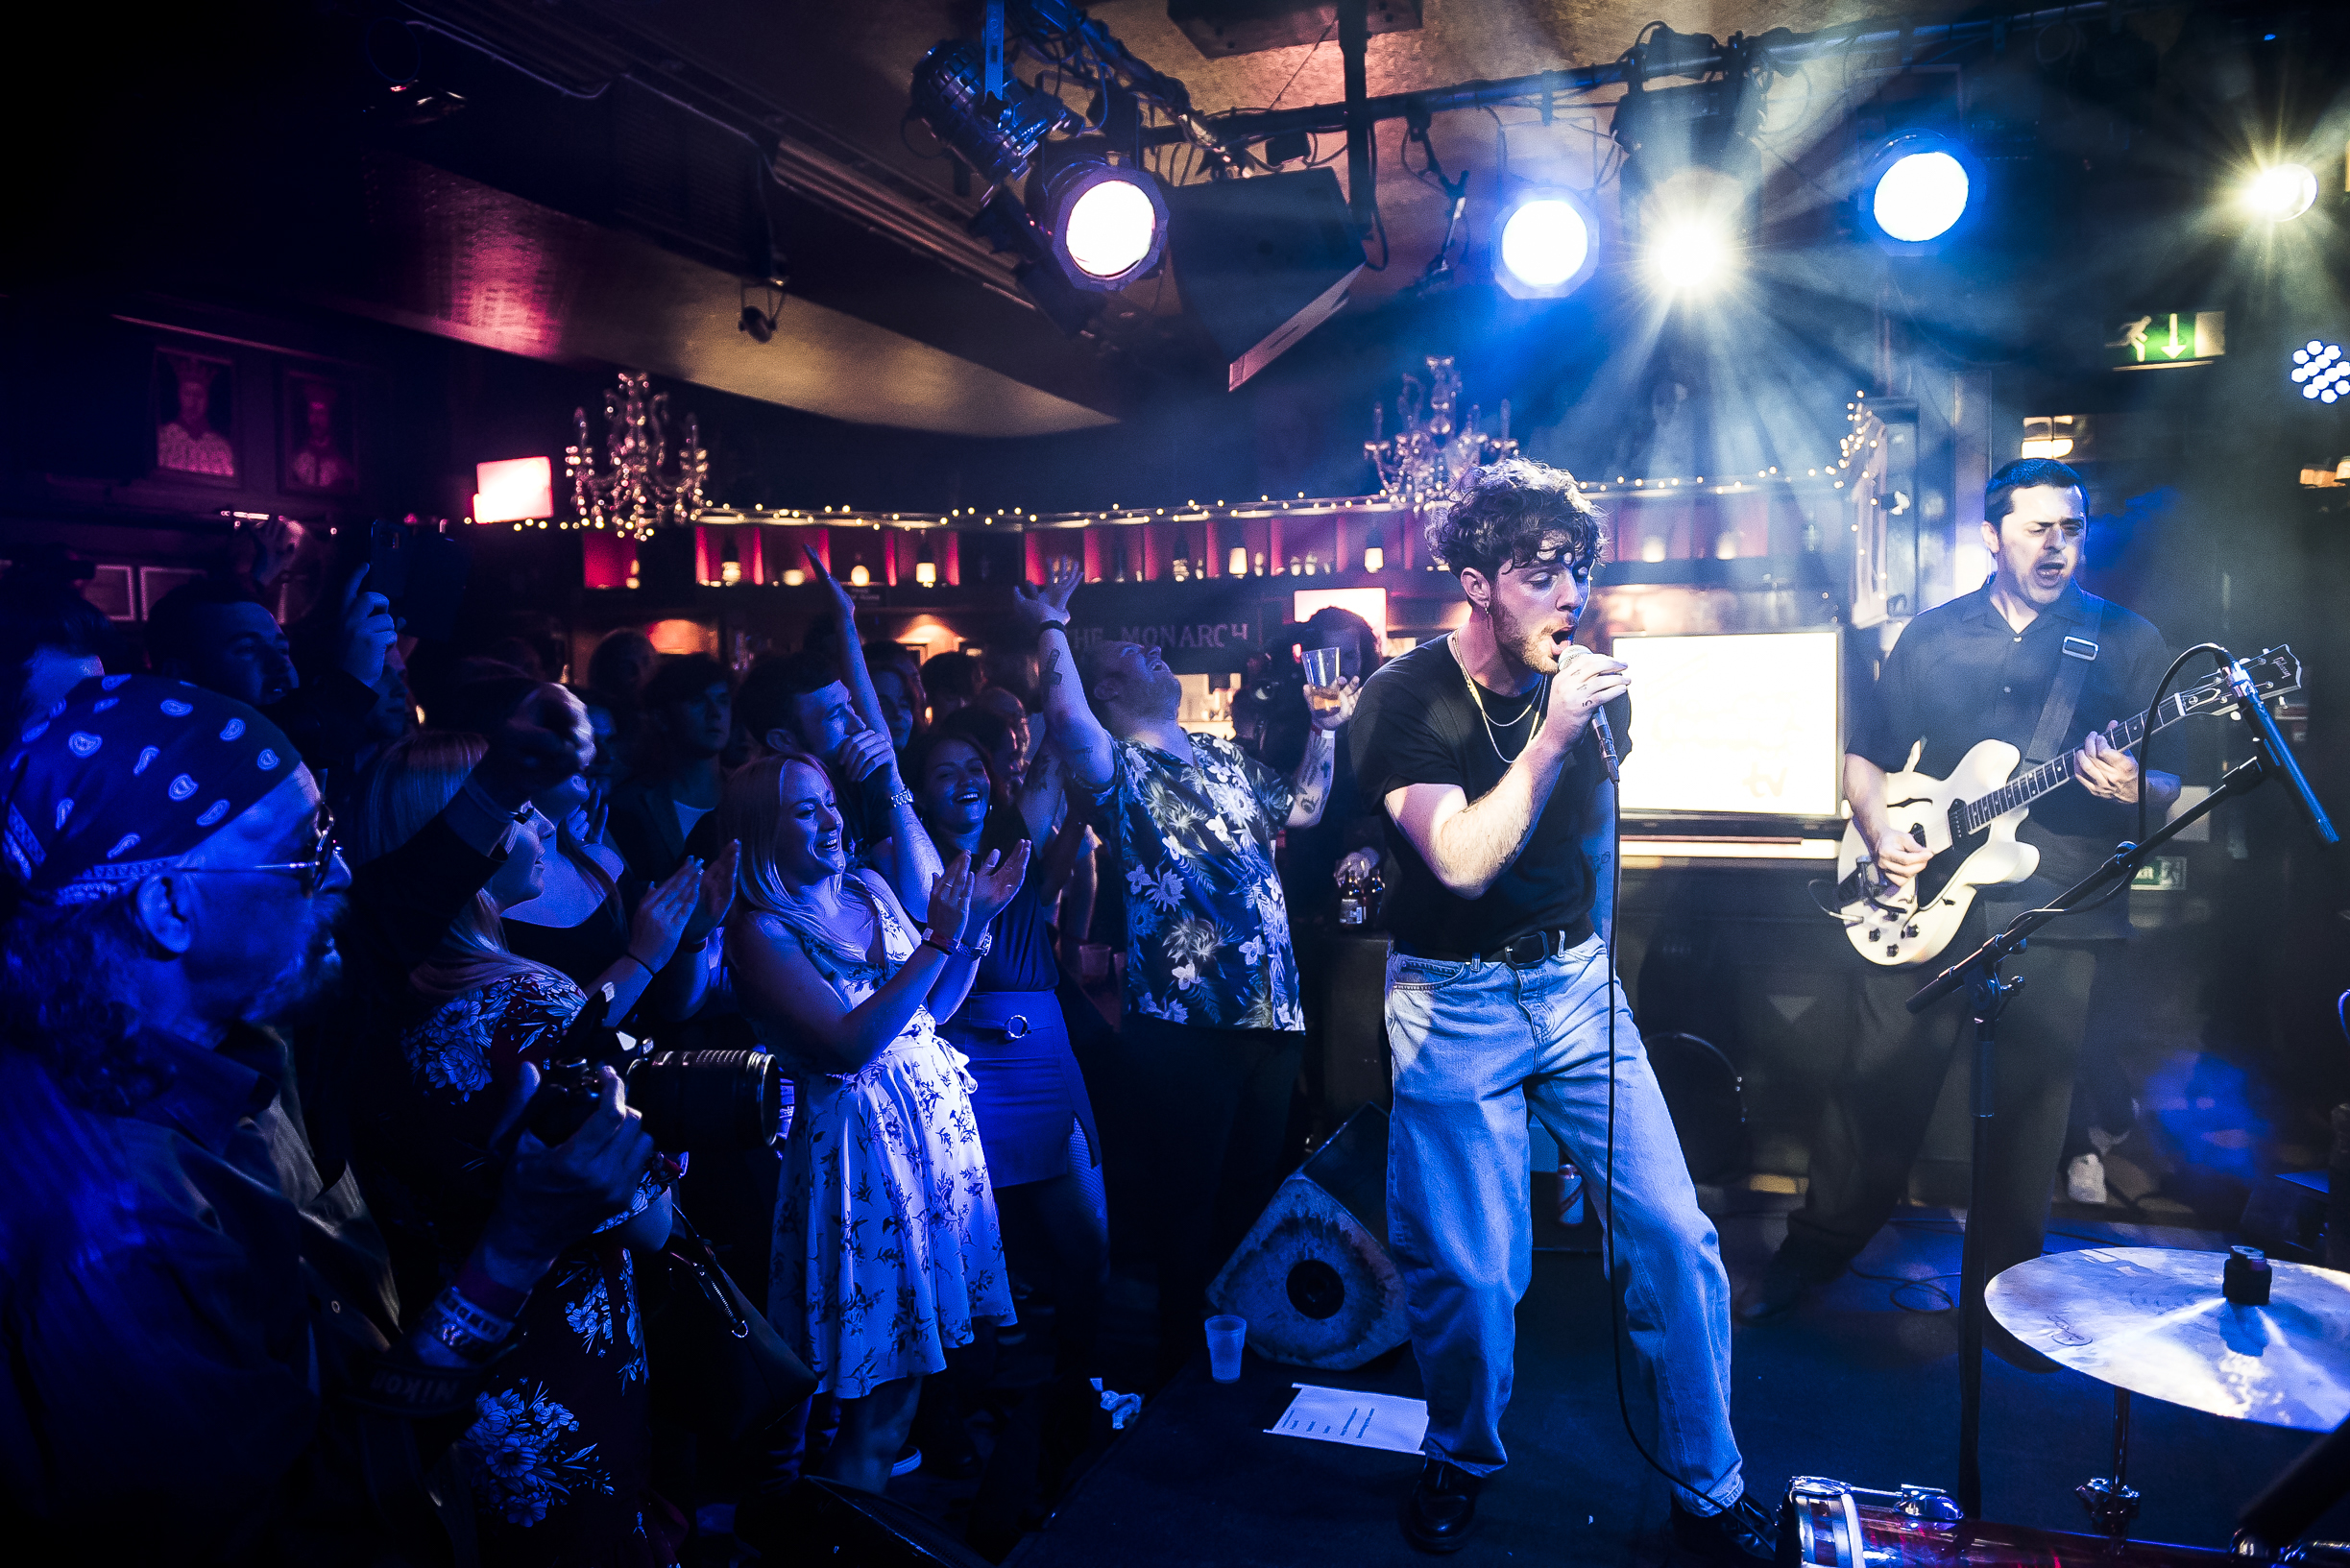 Tom Grennan performing on stage at The Monarch in front of a big crowd for Red Stripe Presents: This Feeling TV episode six.